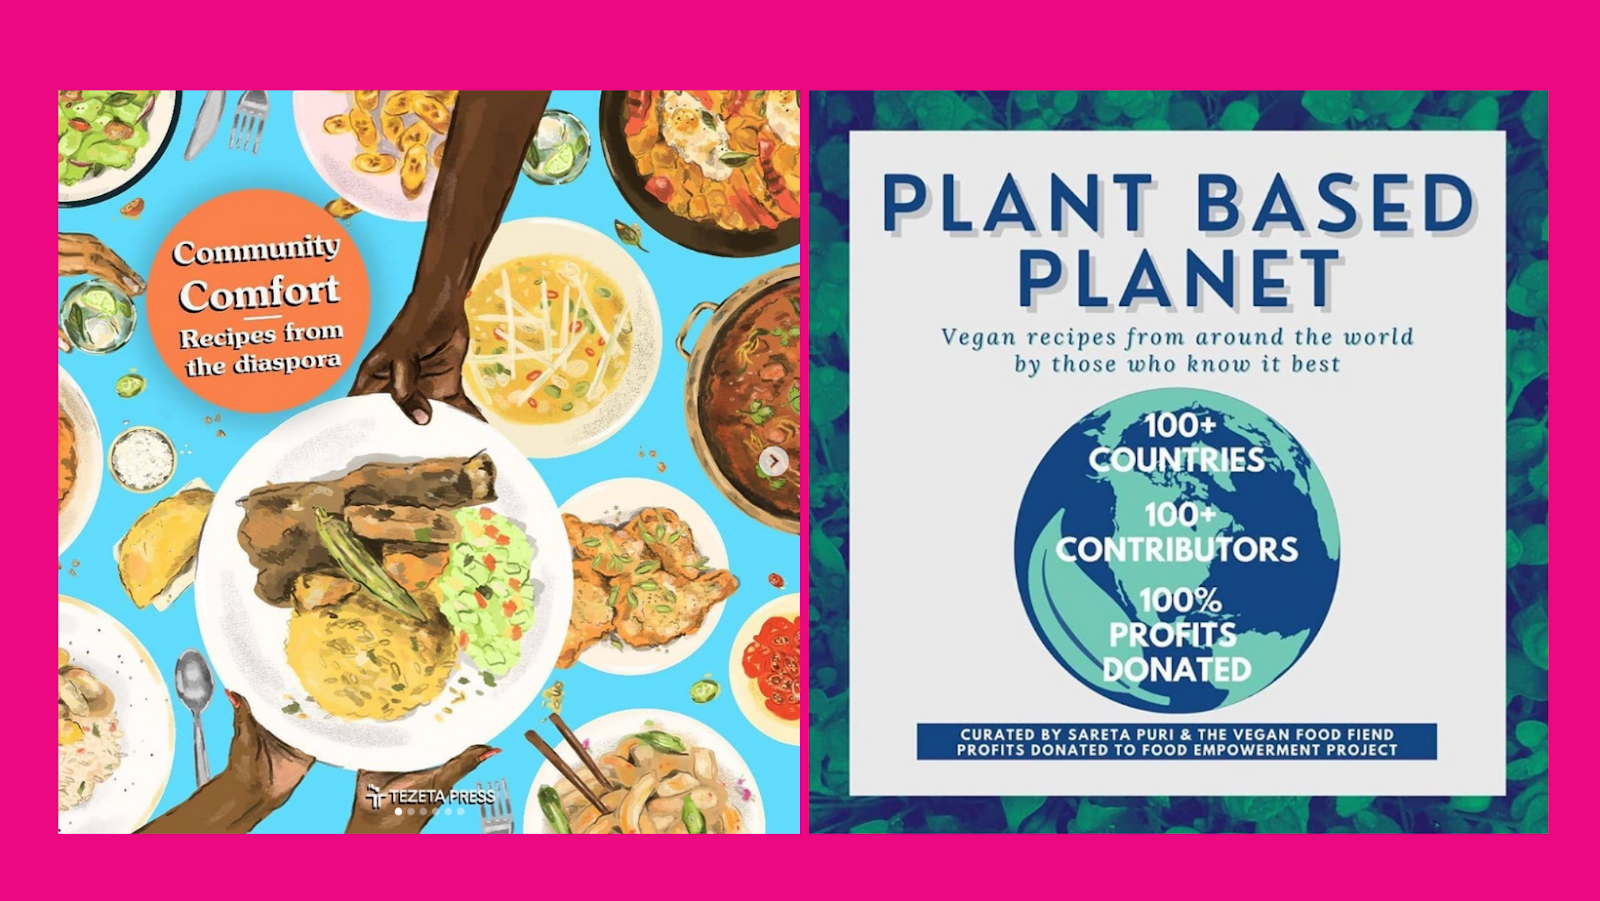 Community Comfort by Riaz Phillips and Plant Based Planet Book